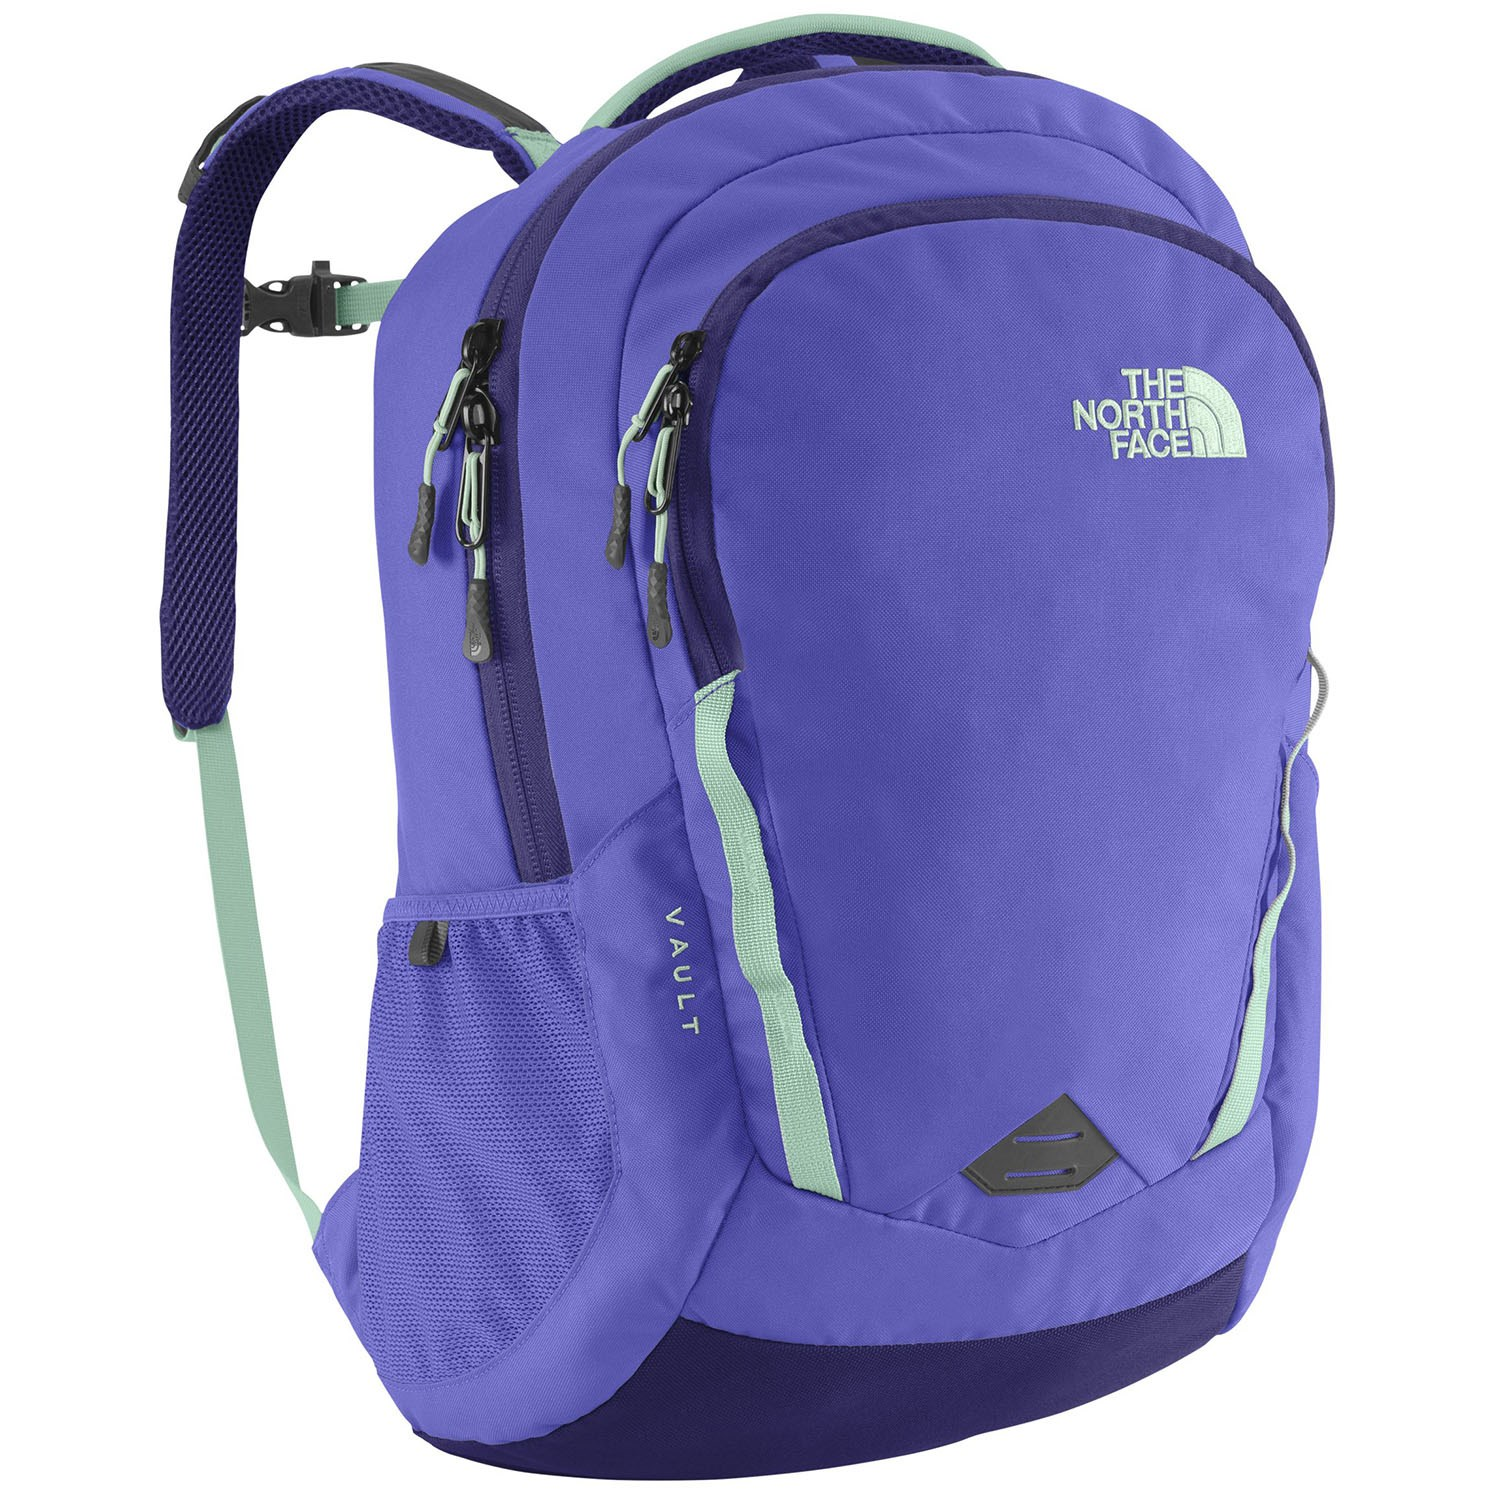 556b9ccdf8b1 The North Face Vault Backpack - Women's